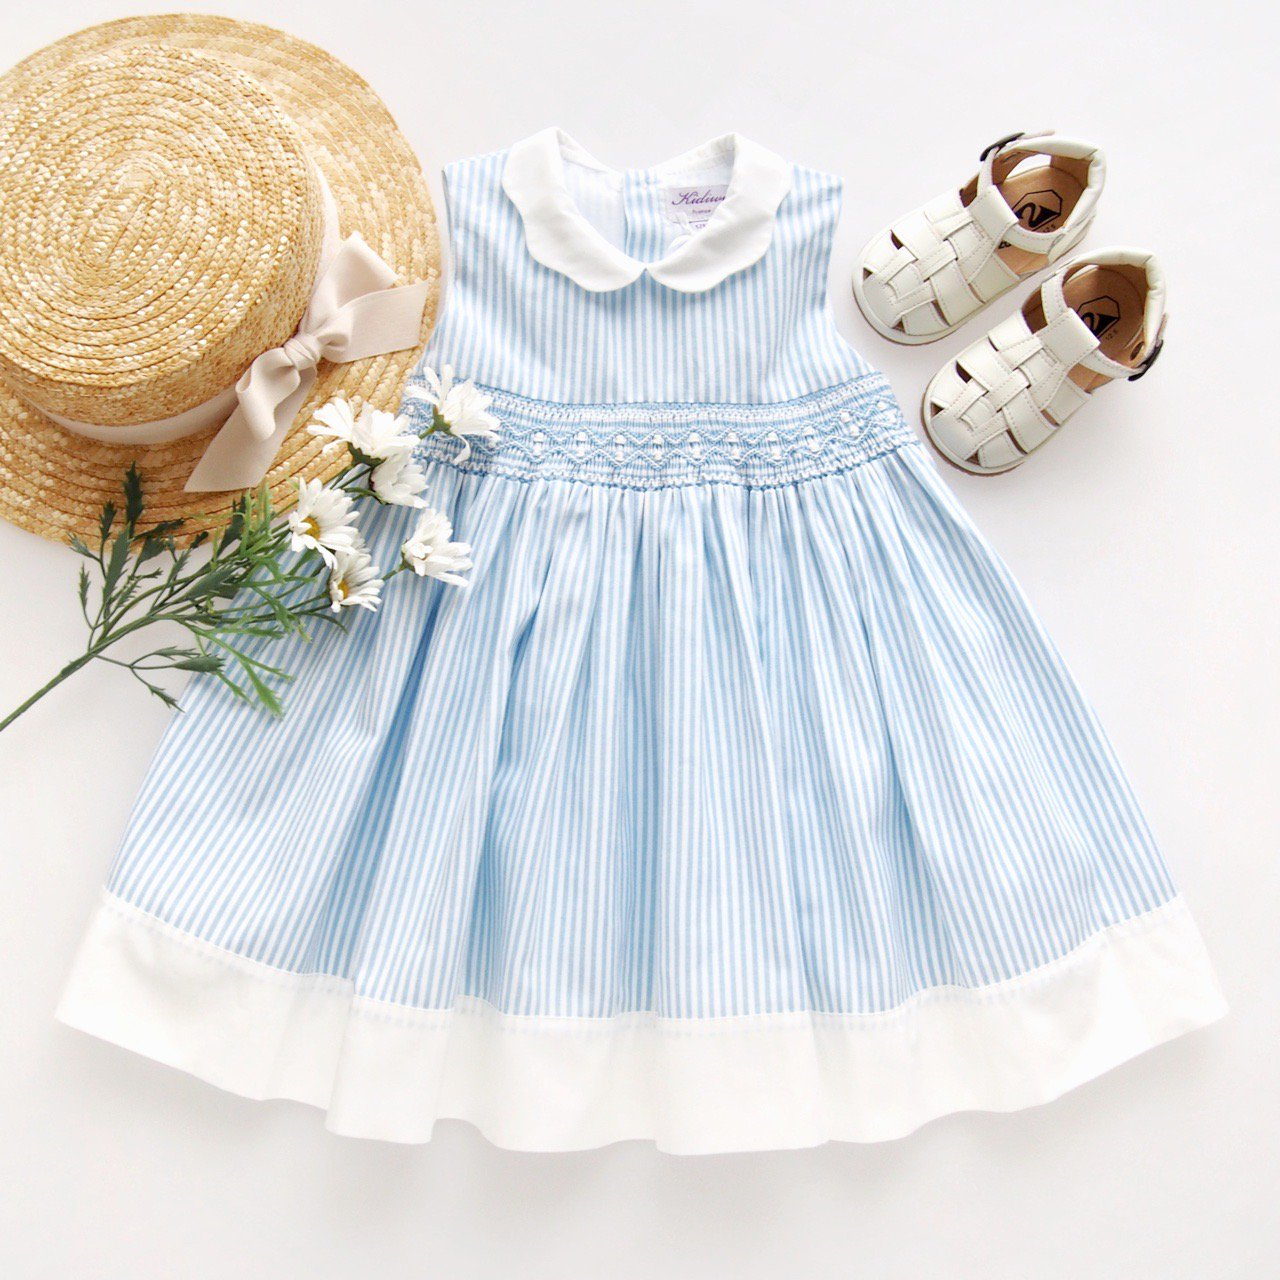 <img class='new_mark_img1' src='https://img.shop-pro.jp/img/new/icons14.gif' style='border:none;display:inline;margin:0px;padding:0px;width:auto;' />Kidiwi - FLORA dress (Blue pinstripes)